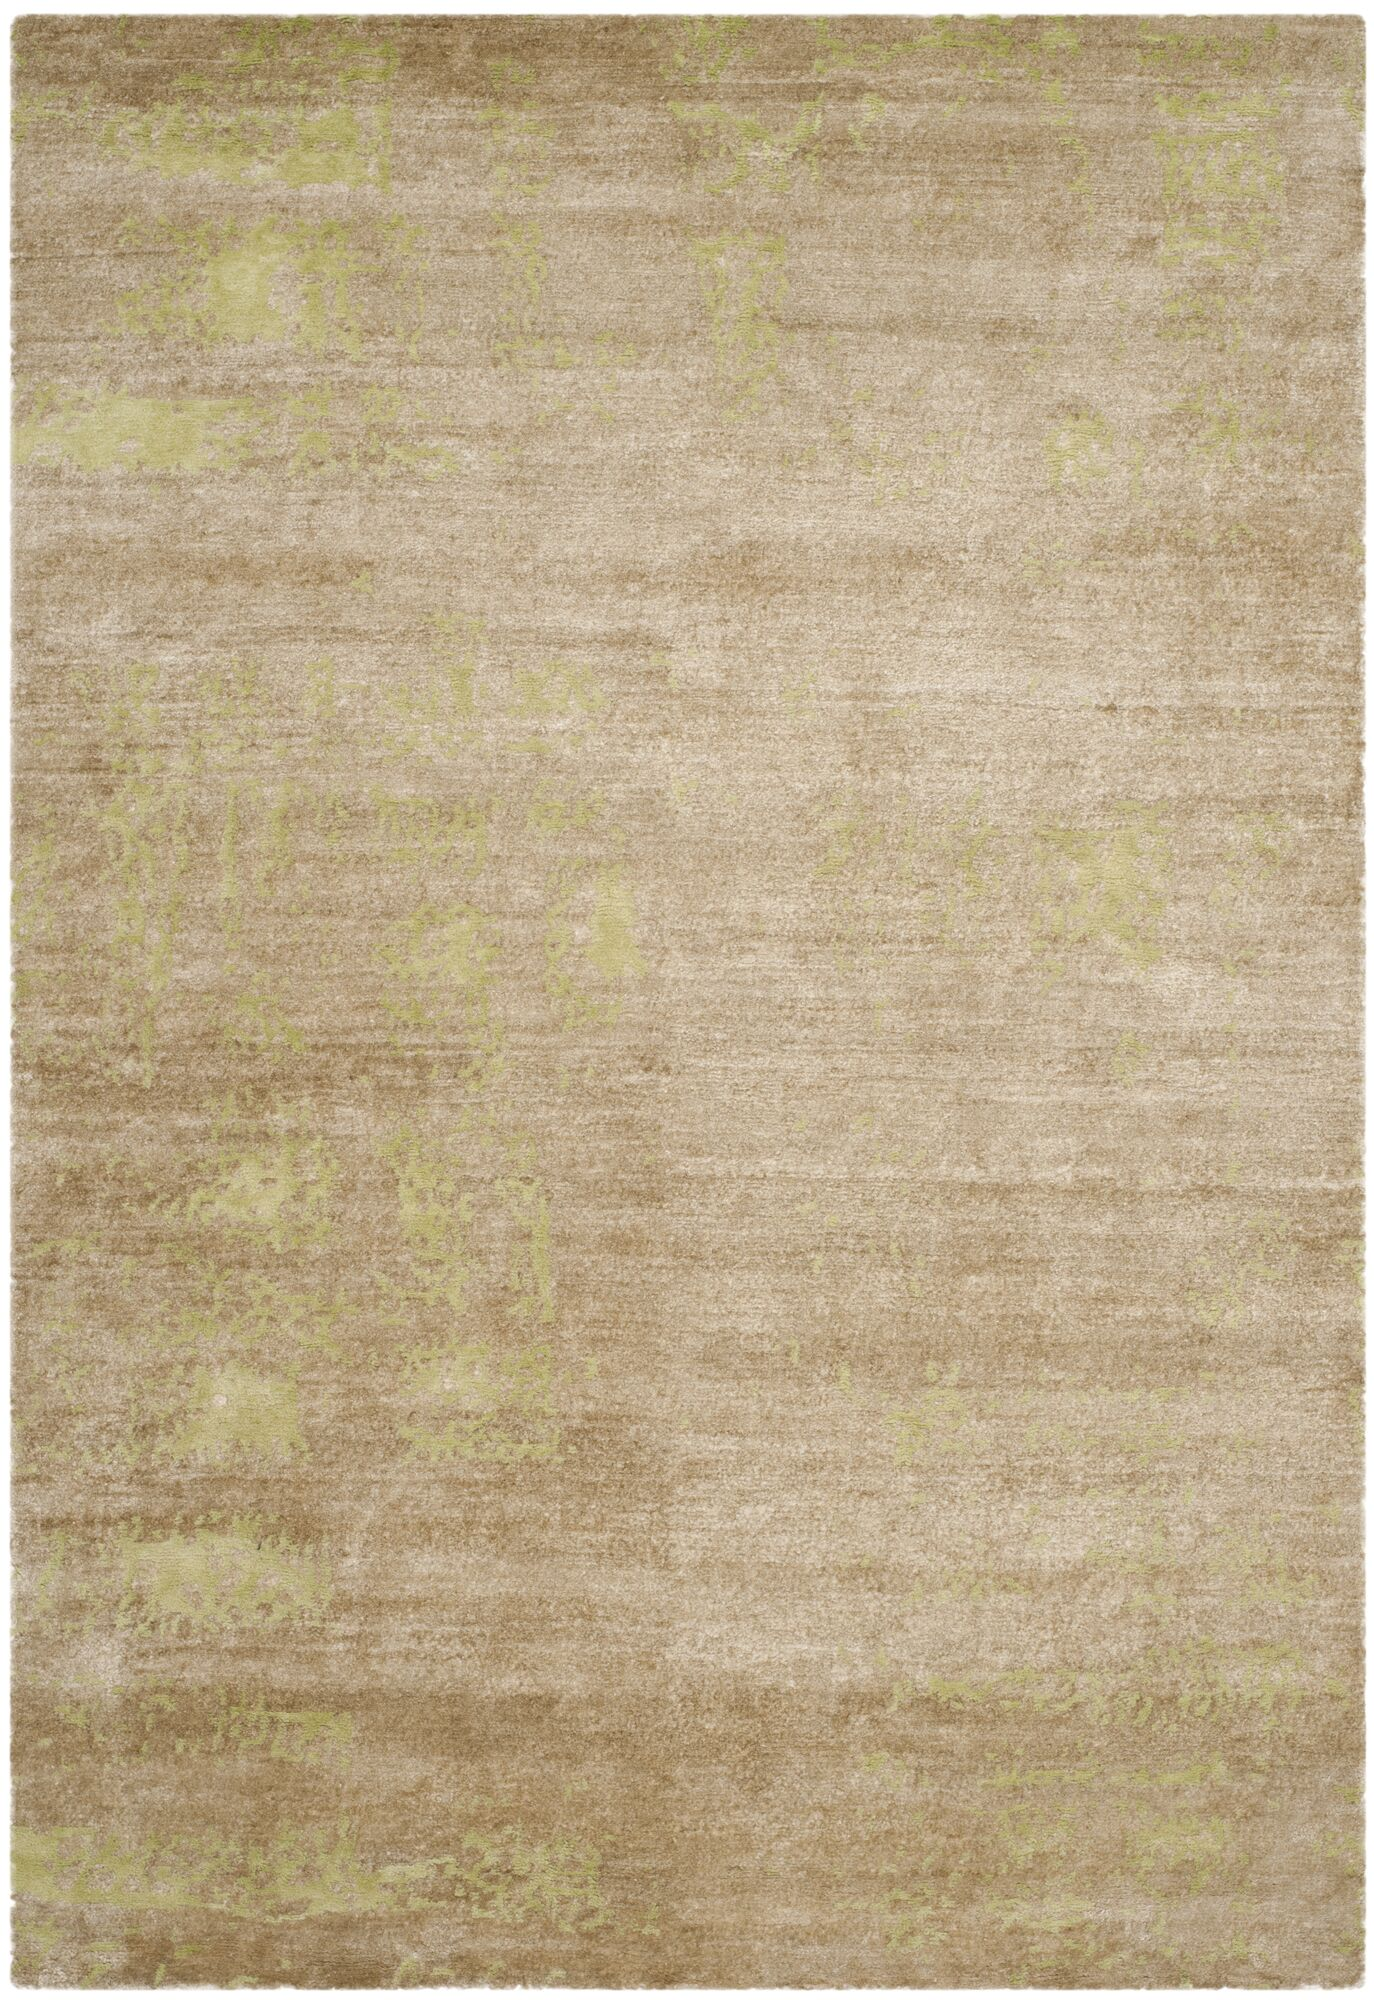 Elrod Tibetan Hand Knotted Green Area Rug Rug Size: Rectangle 9' x 12'